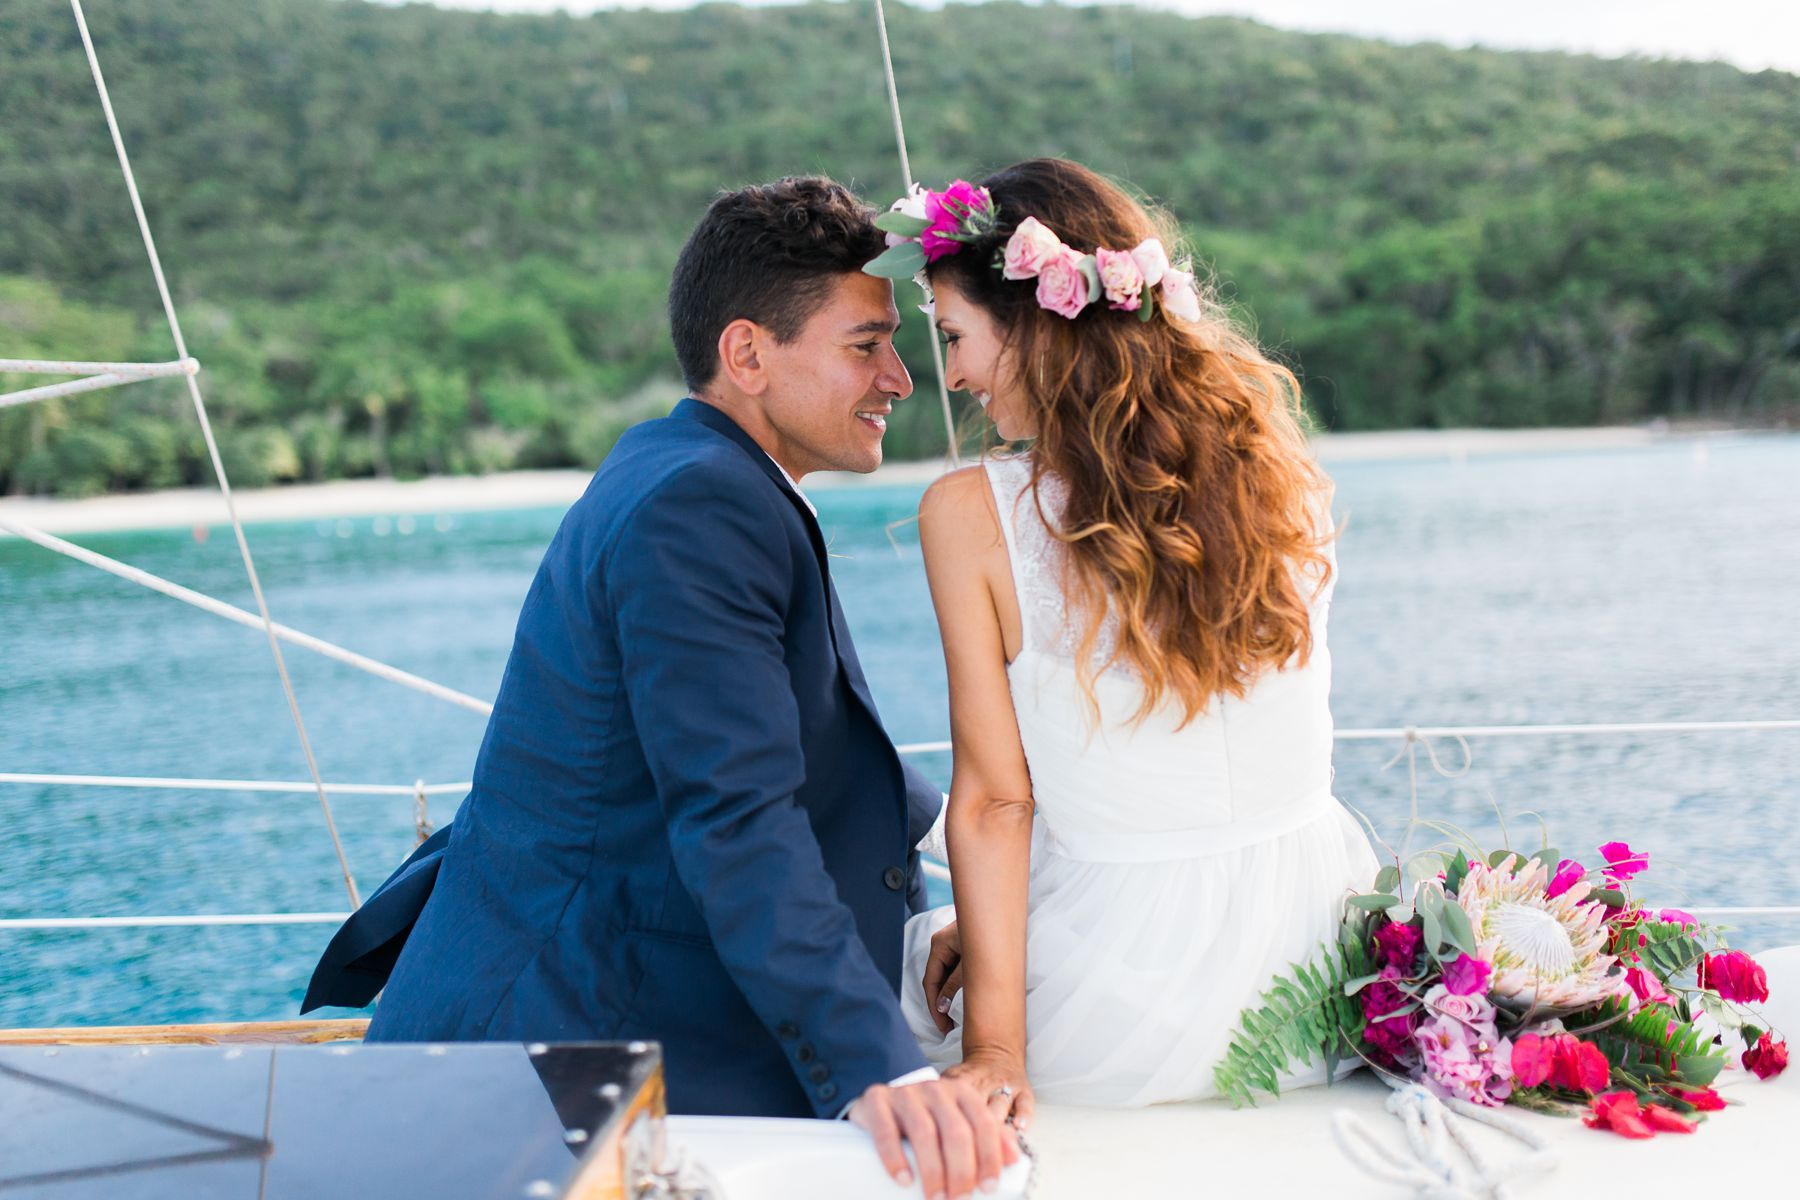 DESTINATION-WEDDING-SAIL-BOAT-ELOPEMENT-VIRGIN-ISLANDS-ST-JOHN-SAVANAH-LOFTUS_0001.jpg